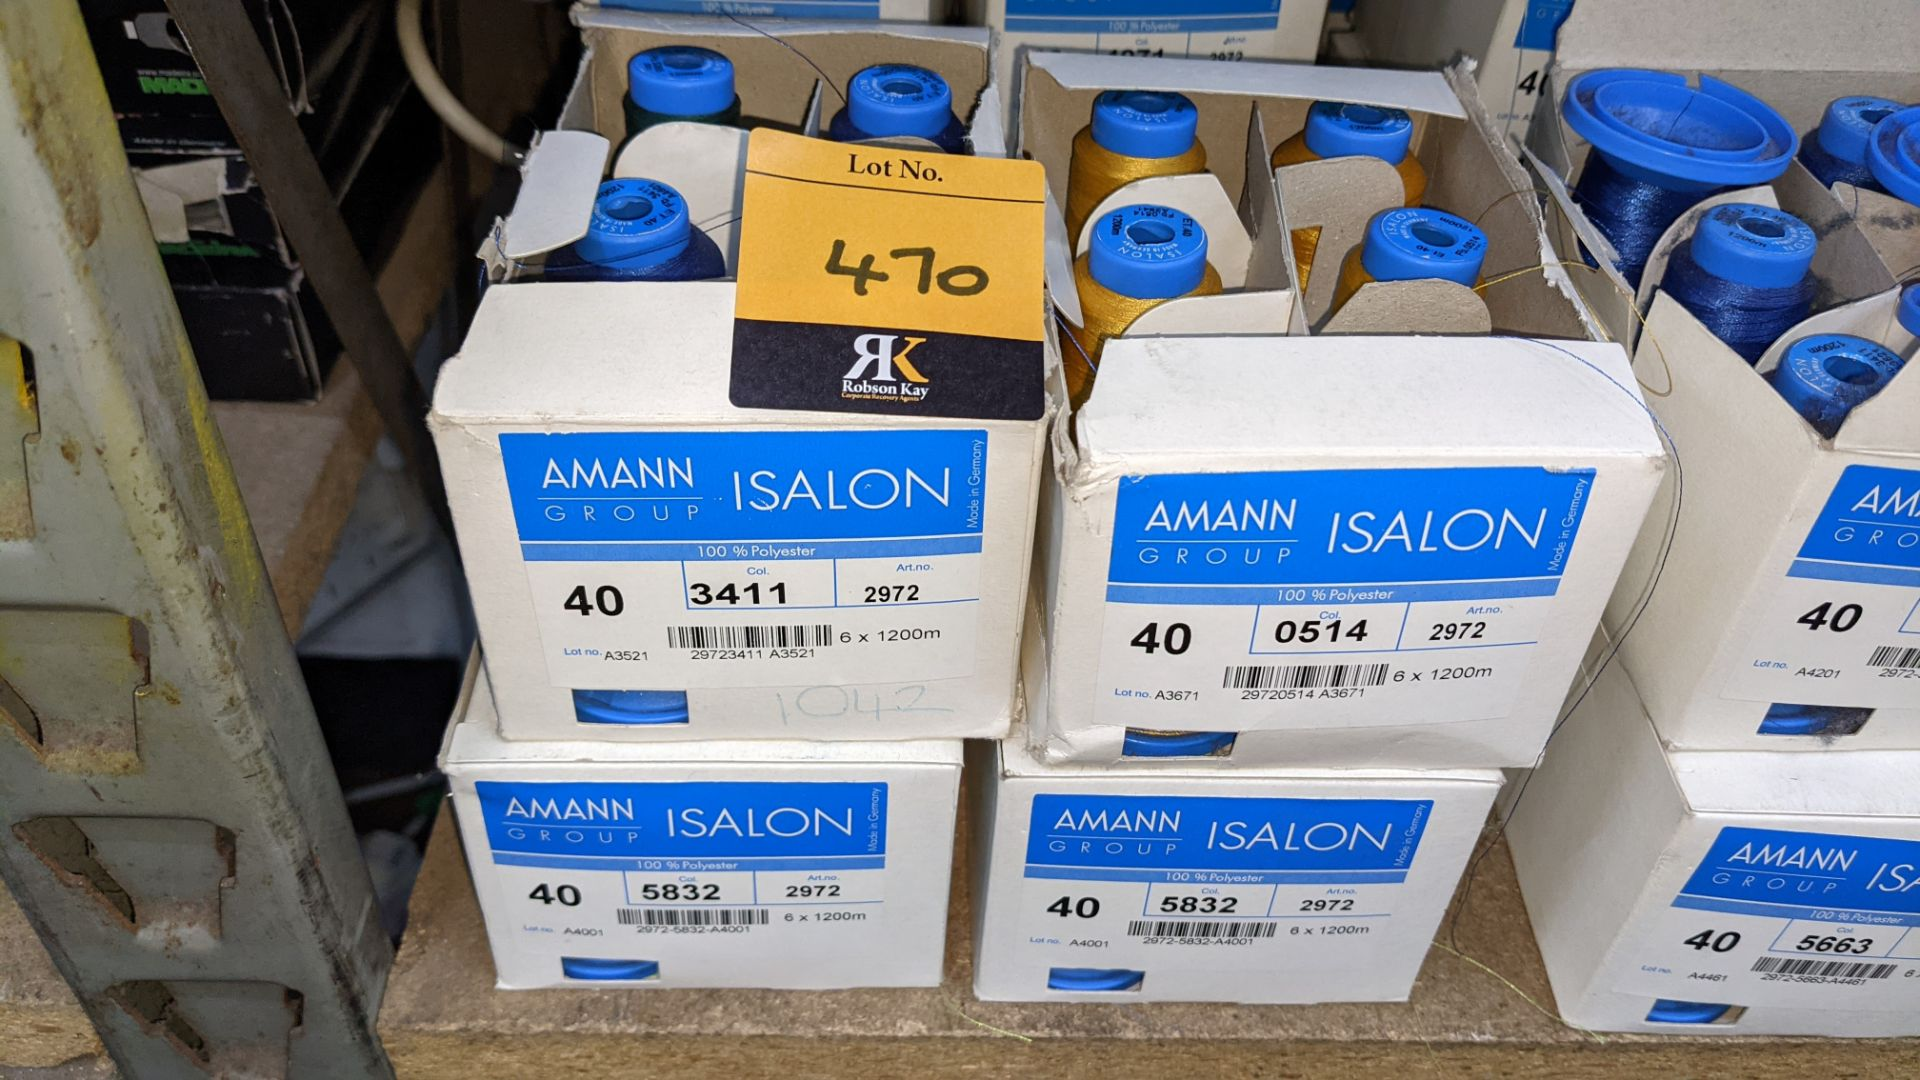 12 boxes of Amann Group ISALON embroidery thread - Image 3 of 6